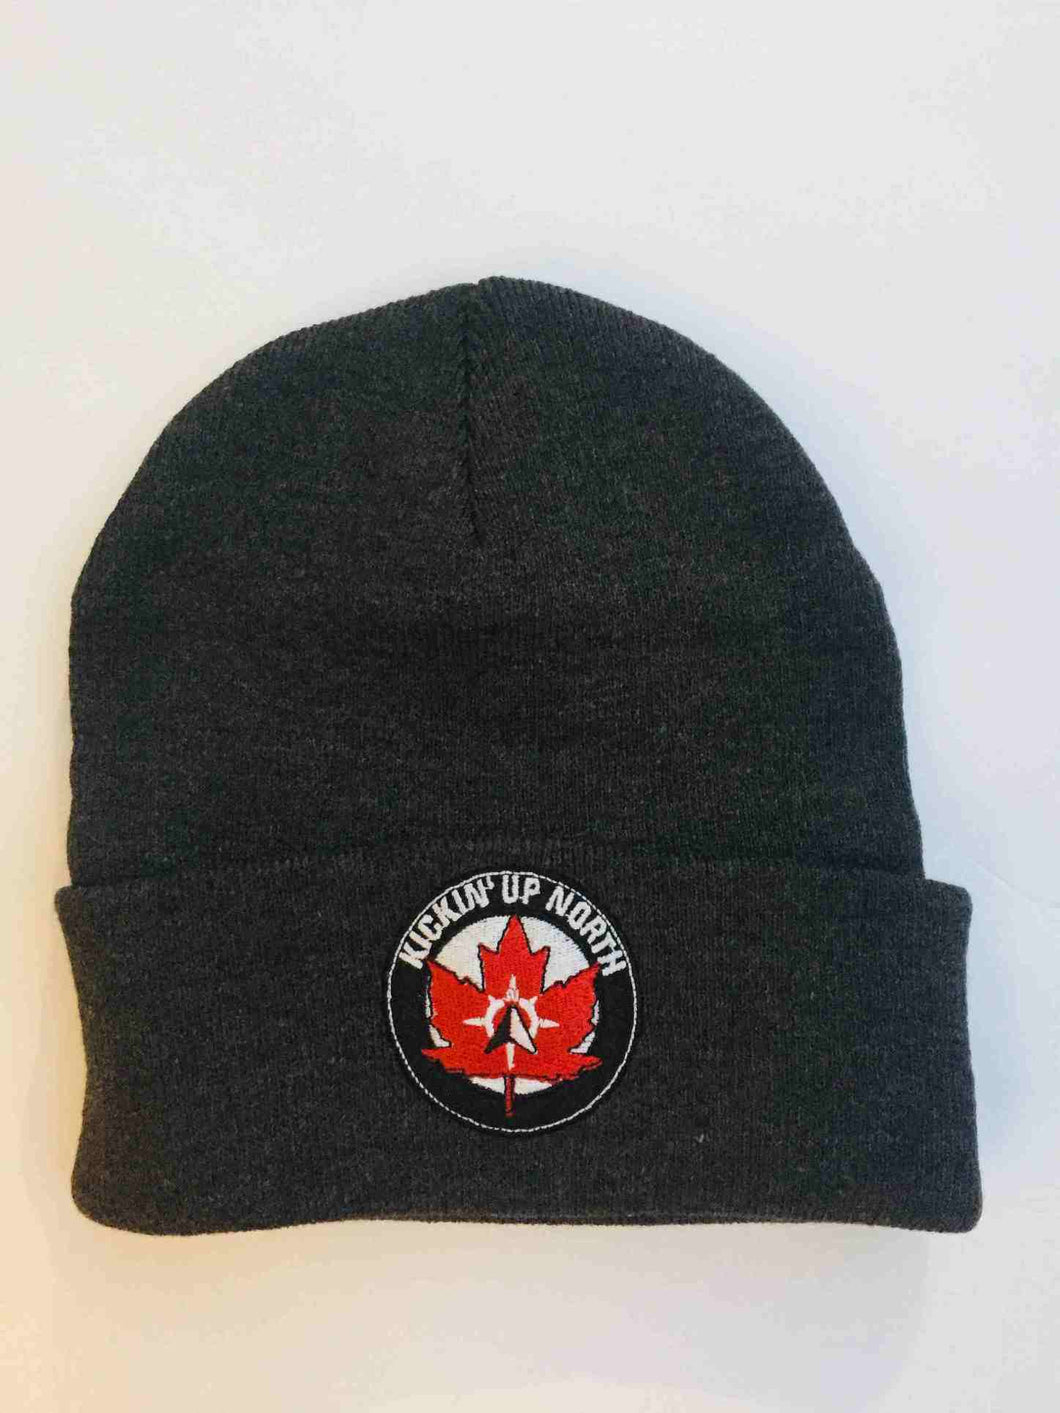 Kickin' Up North Winter Hat - Logo